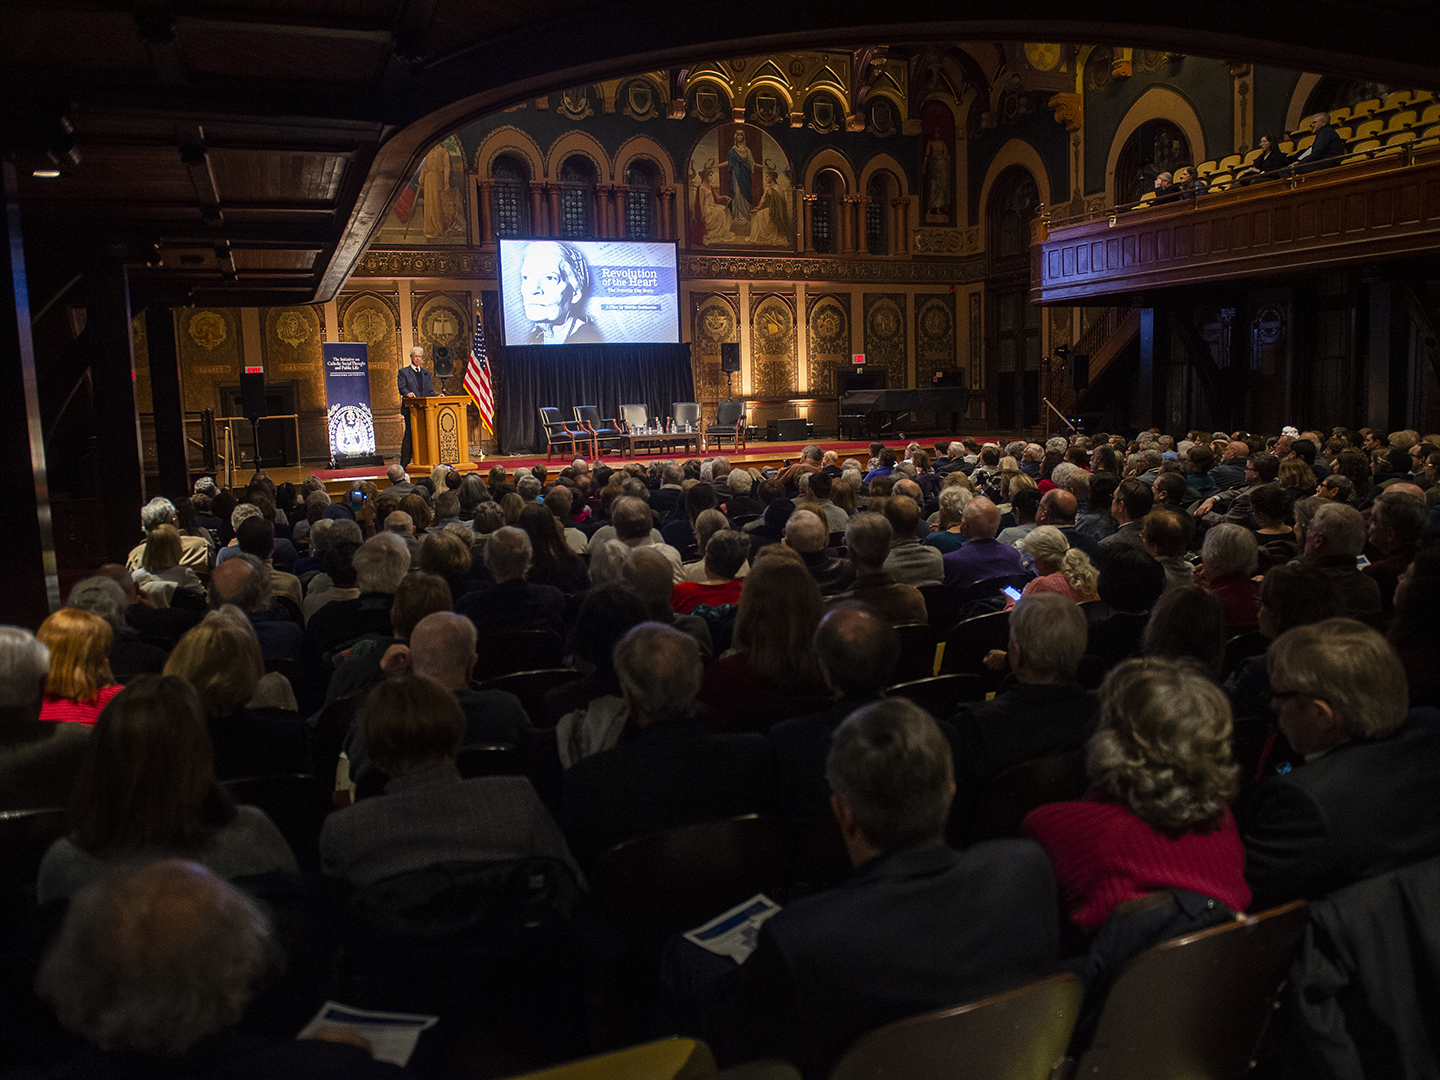 It was a packed house in Gaston Hall for the Washington premiere of Revolution of the Heart: The Dorothy Day Story